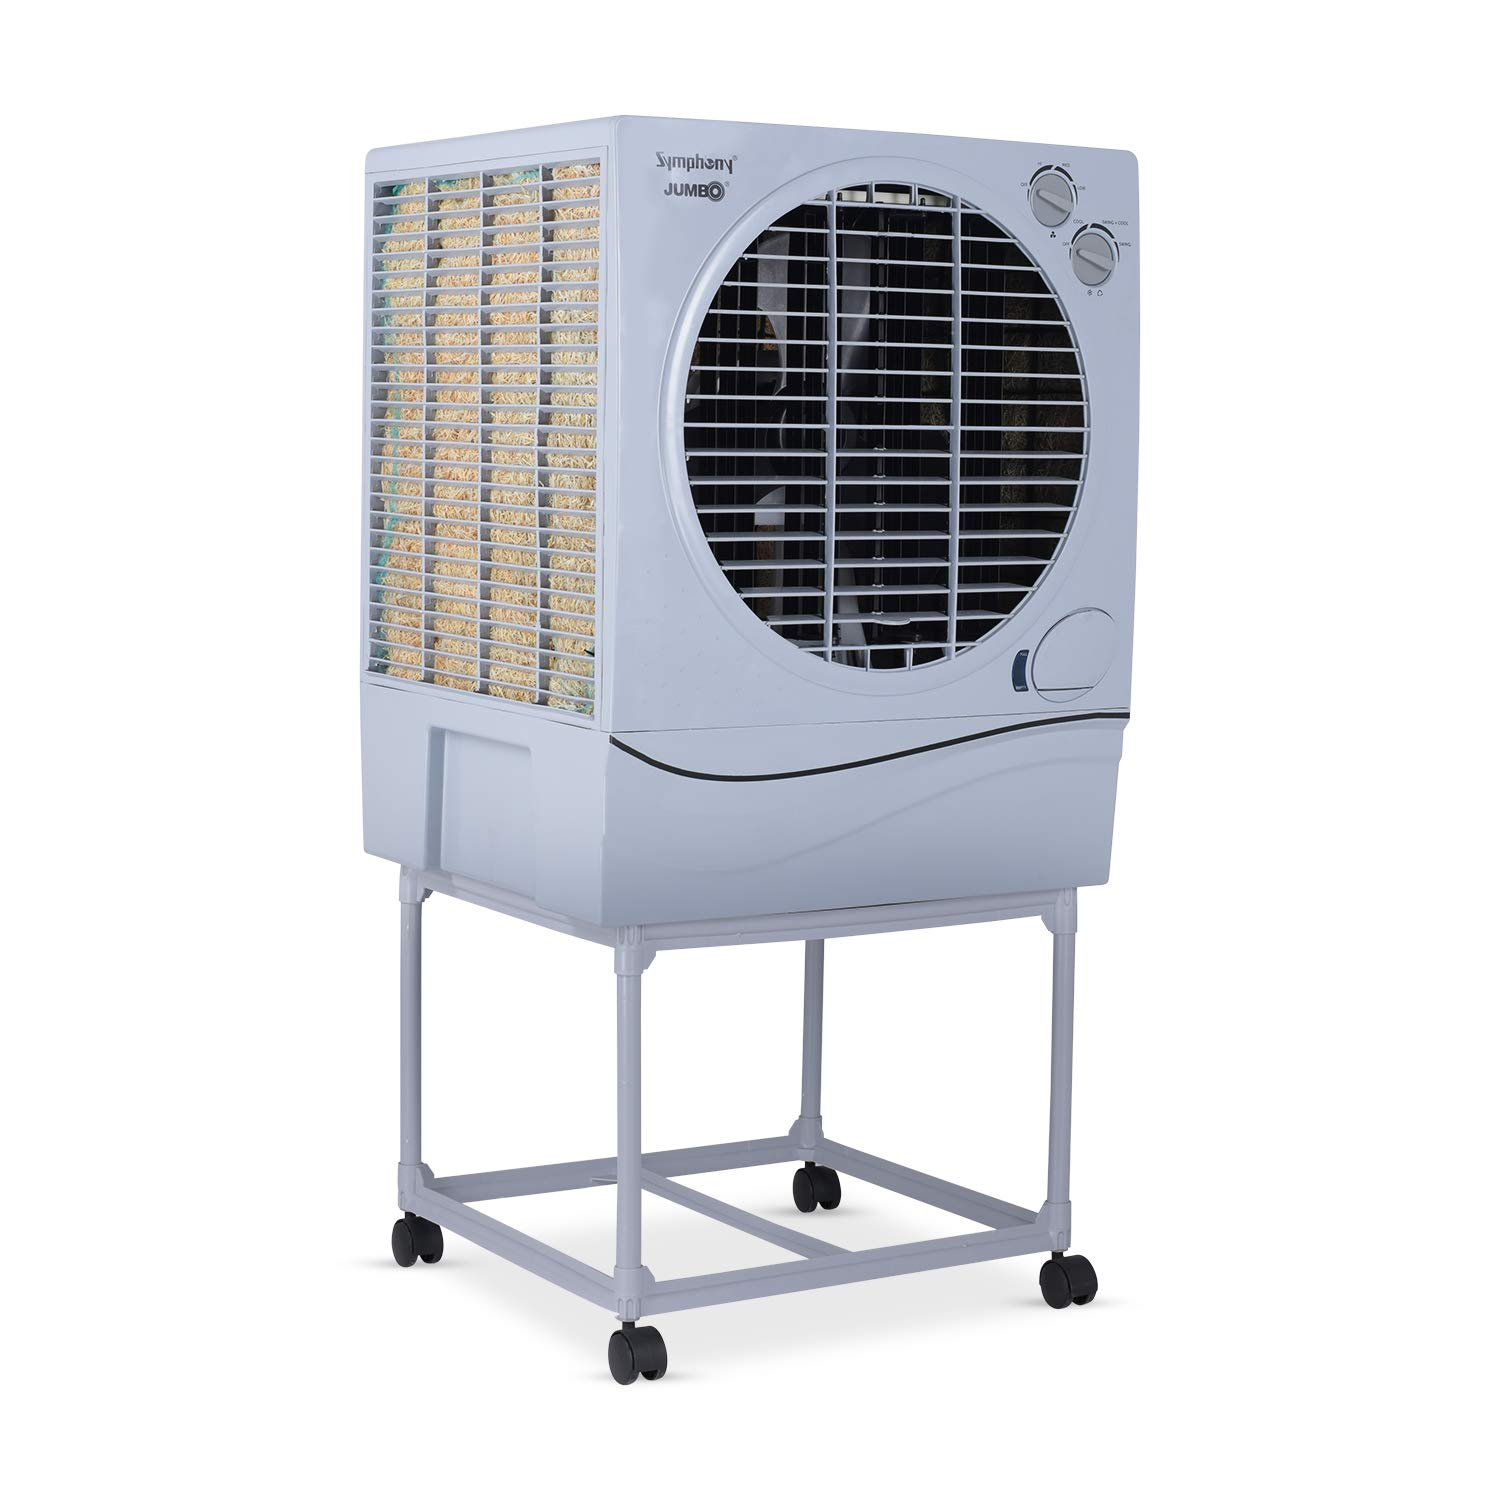 Symphony JUMBO 70 Desert Air Cooler 70-litres, With Trolley, Powerful Fan, 3-Side Cooling Pads, Whisper-quiet Performance & Low Power Consumption (Gre